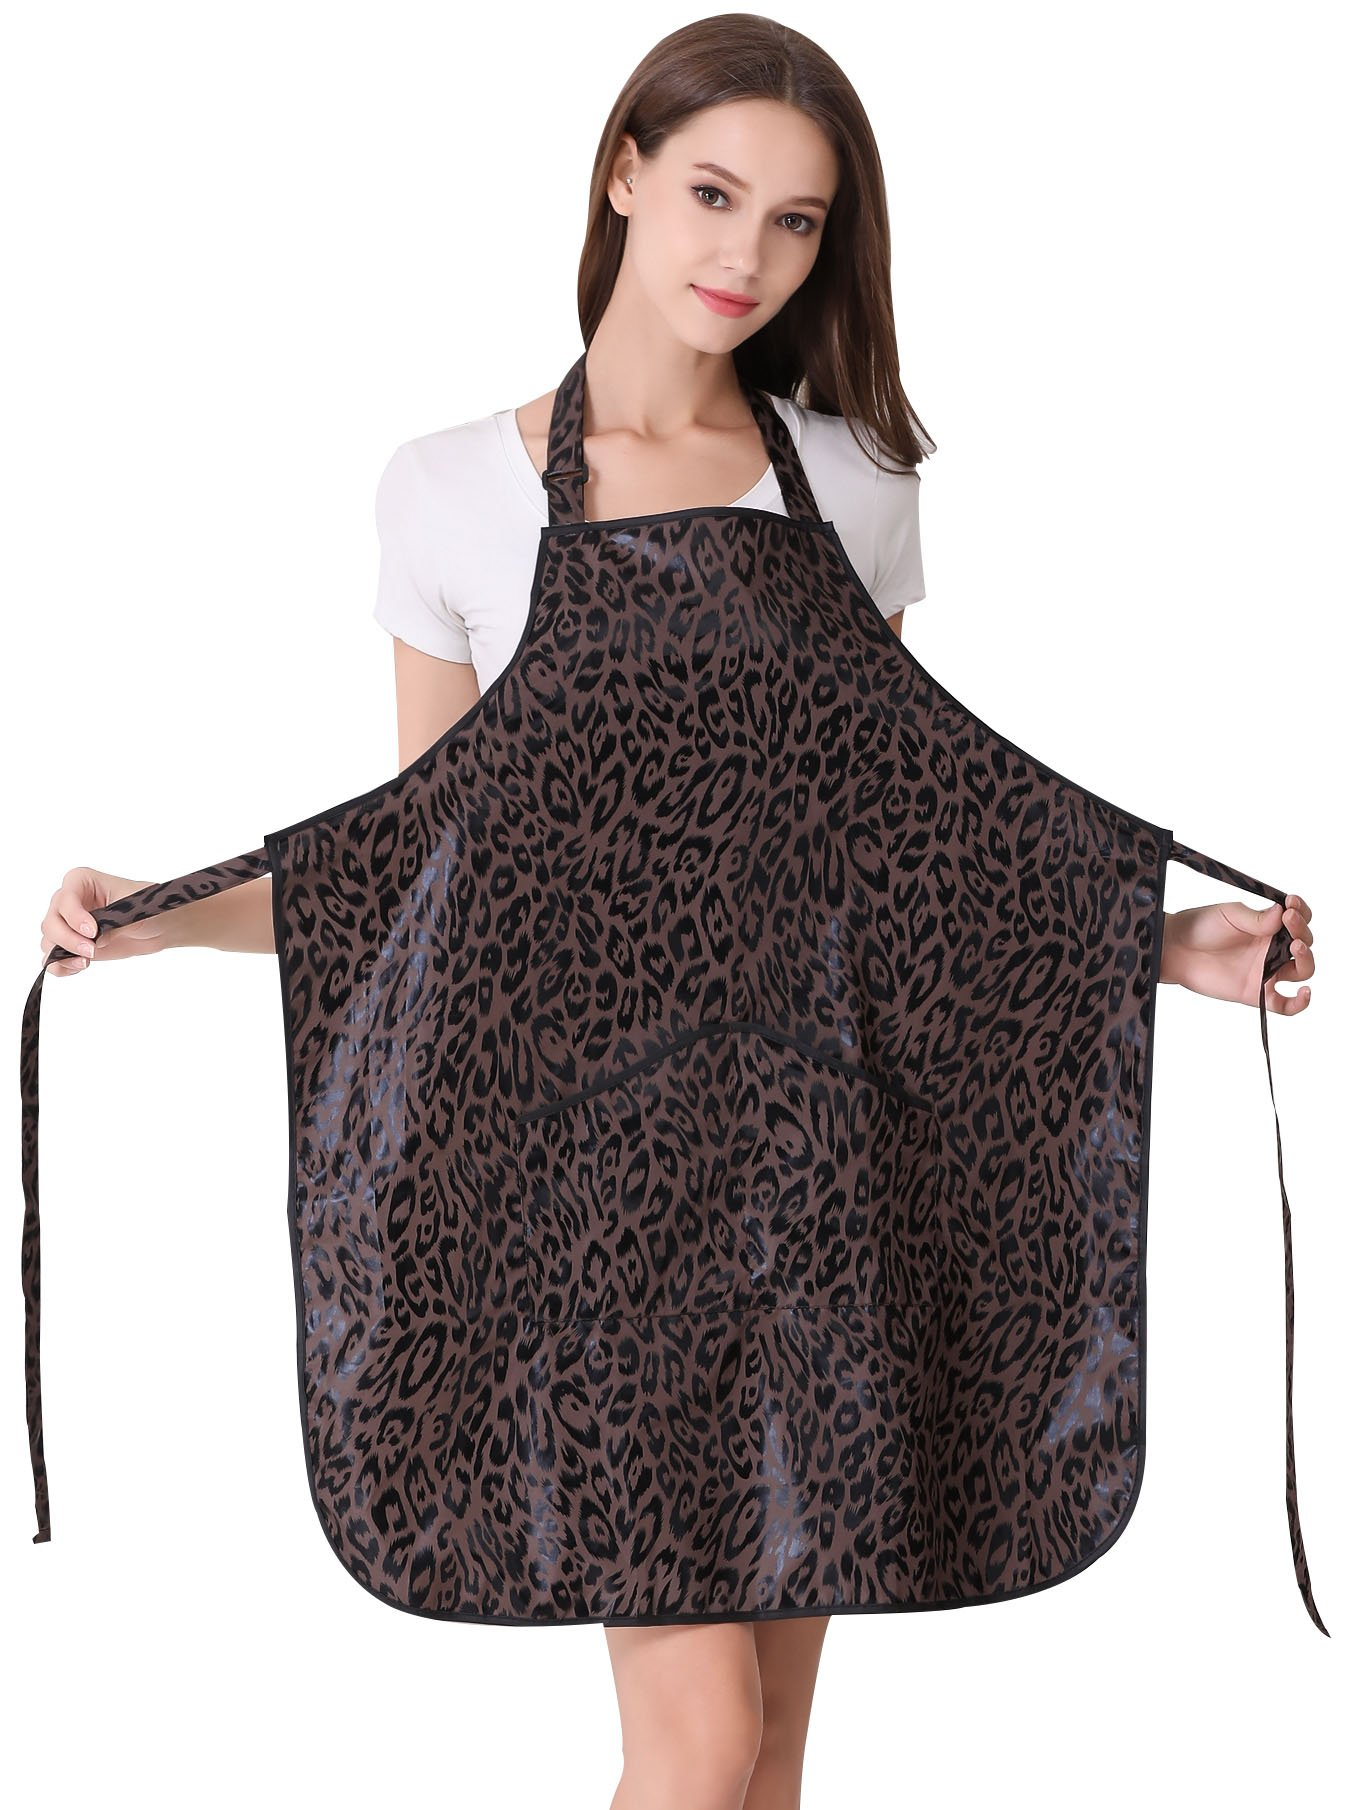 Hair Stylist Apron for Salon Hairdresser, Barber Haircut Styling Apron With Pockets-Leopard Print by Perfehair (Image #2)